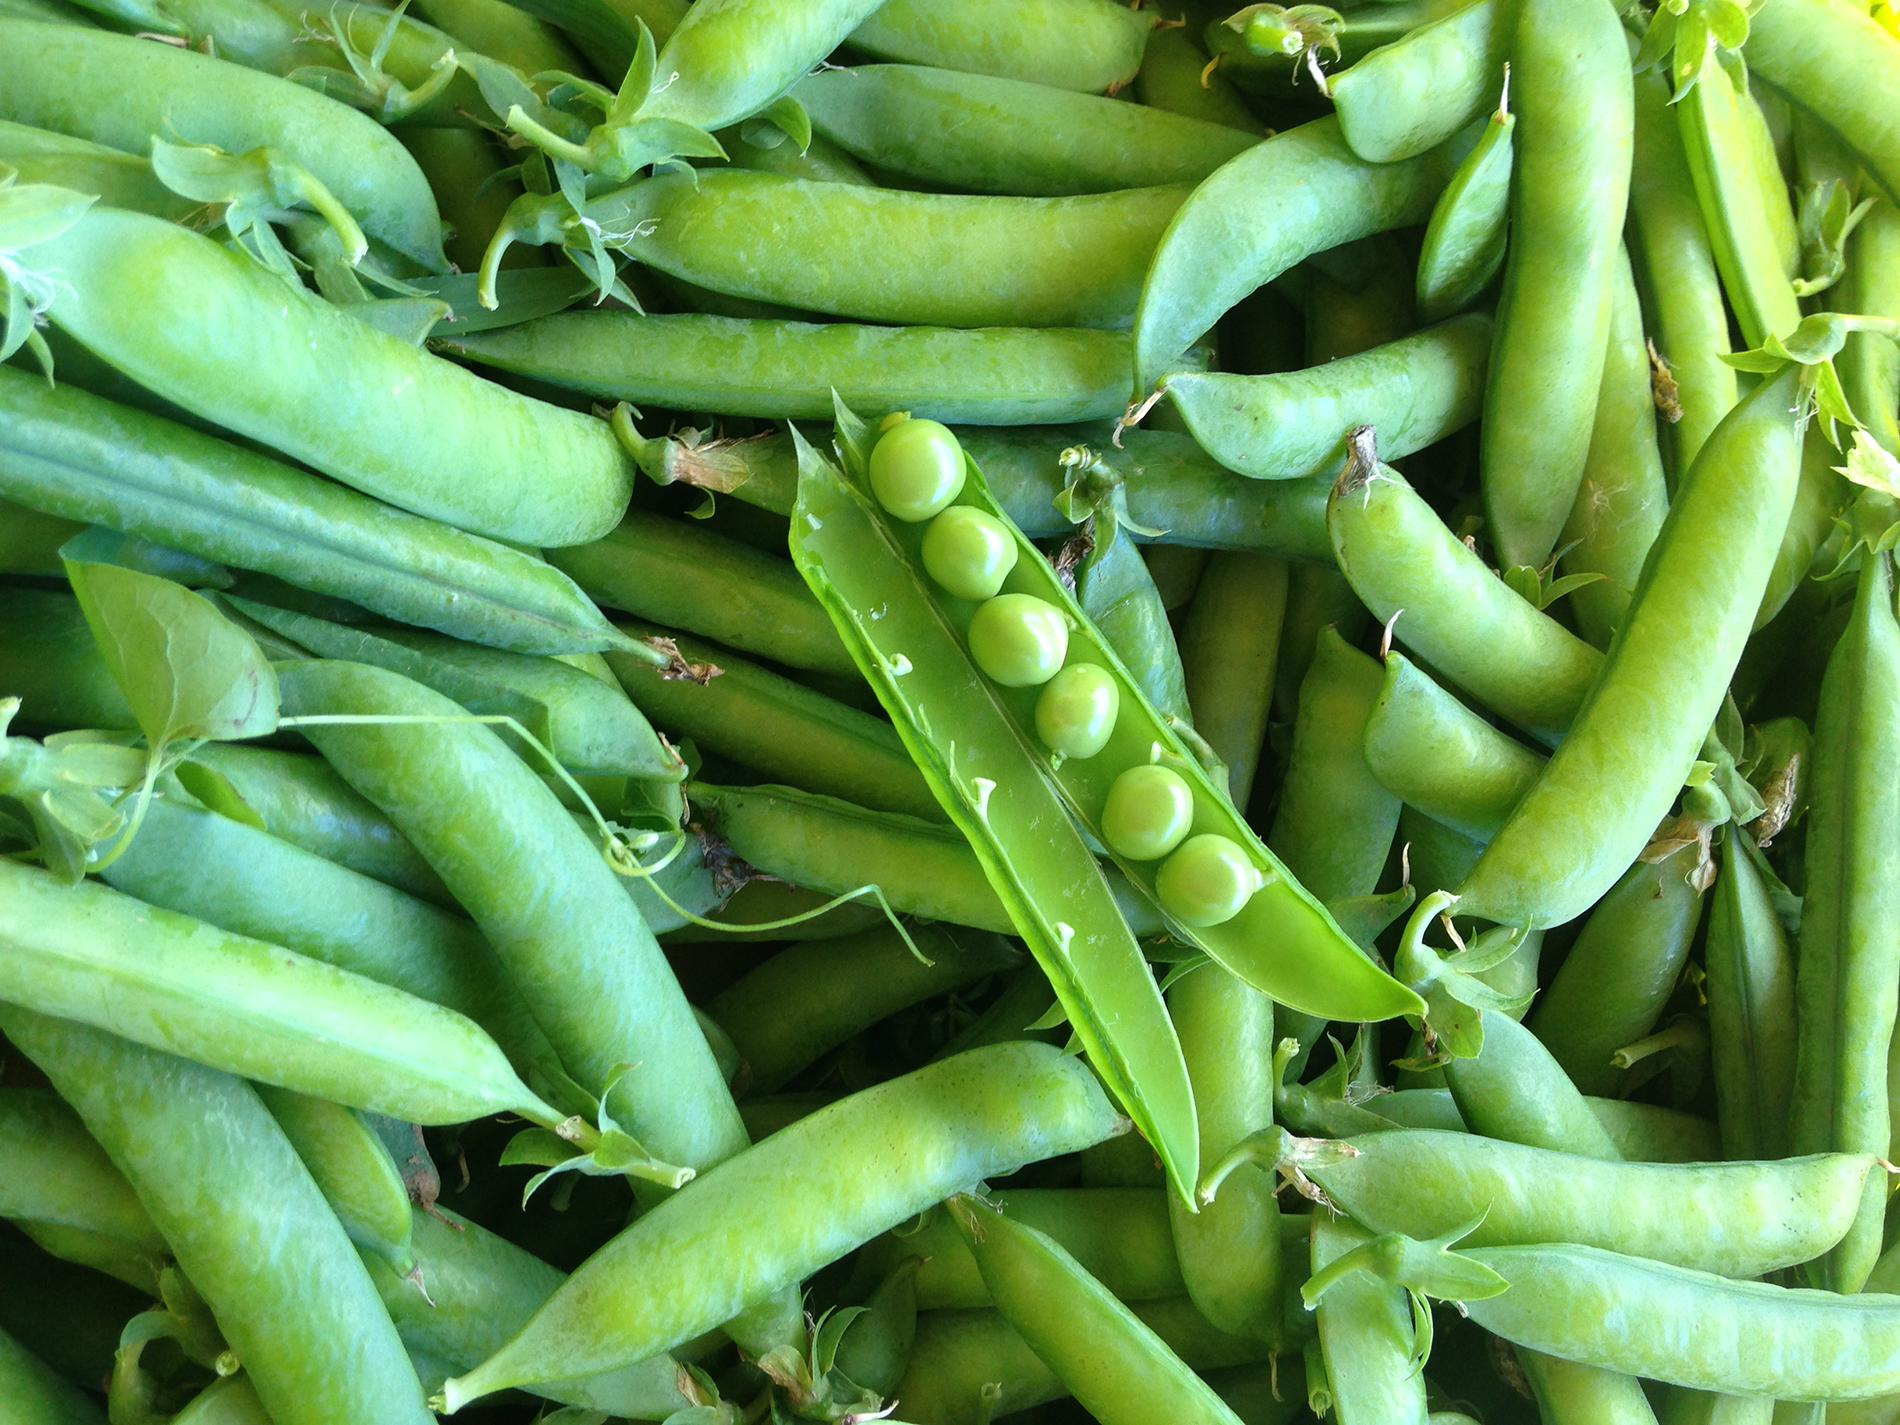 Malvitz Bay Farms peas